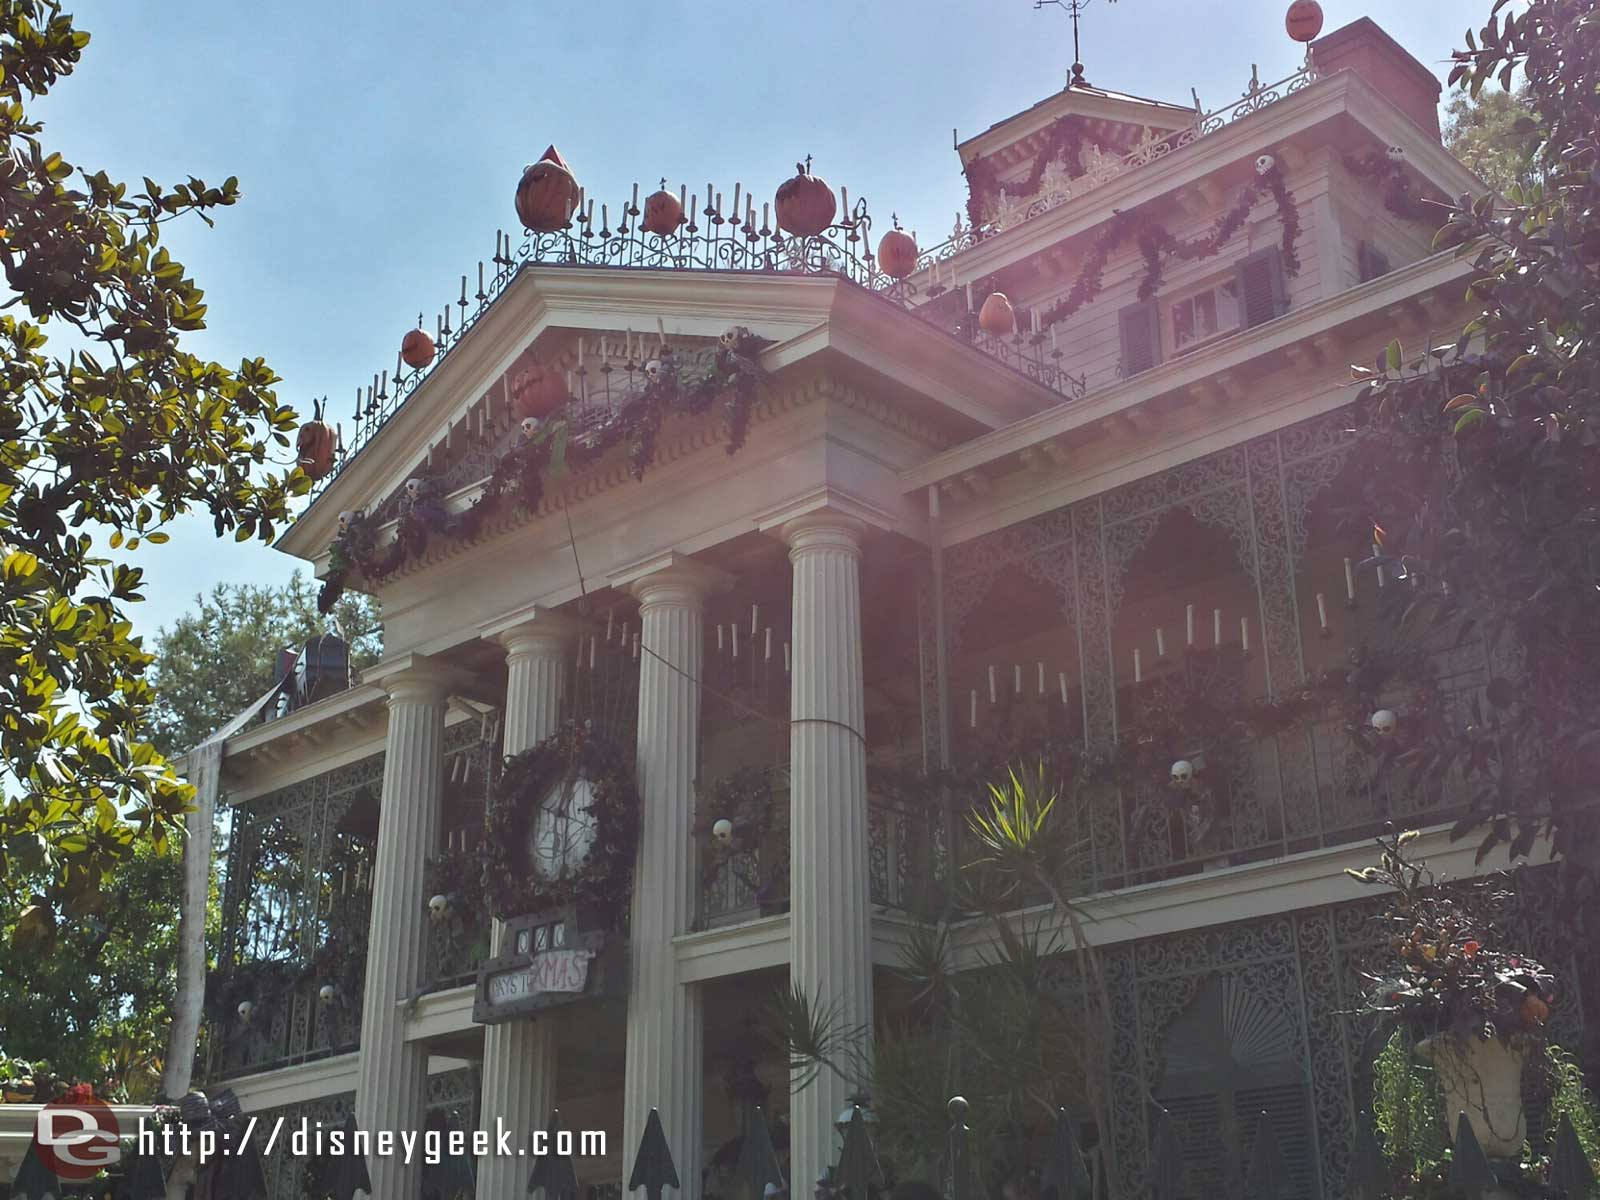 Haunted Mansion Holiday opened #Disneyland